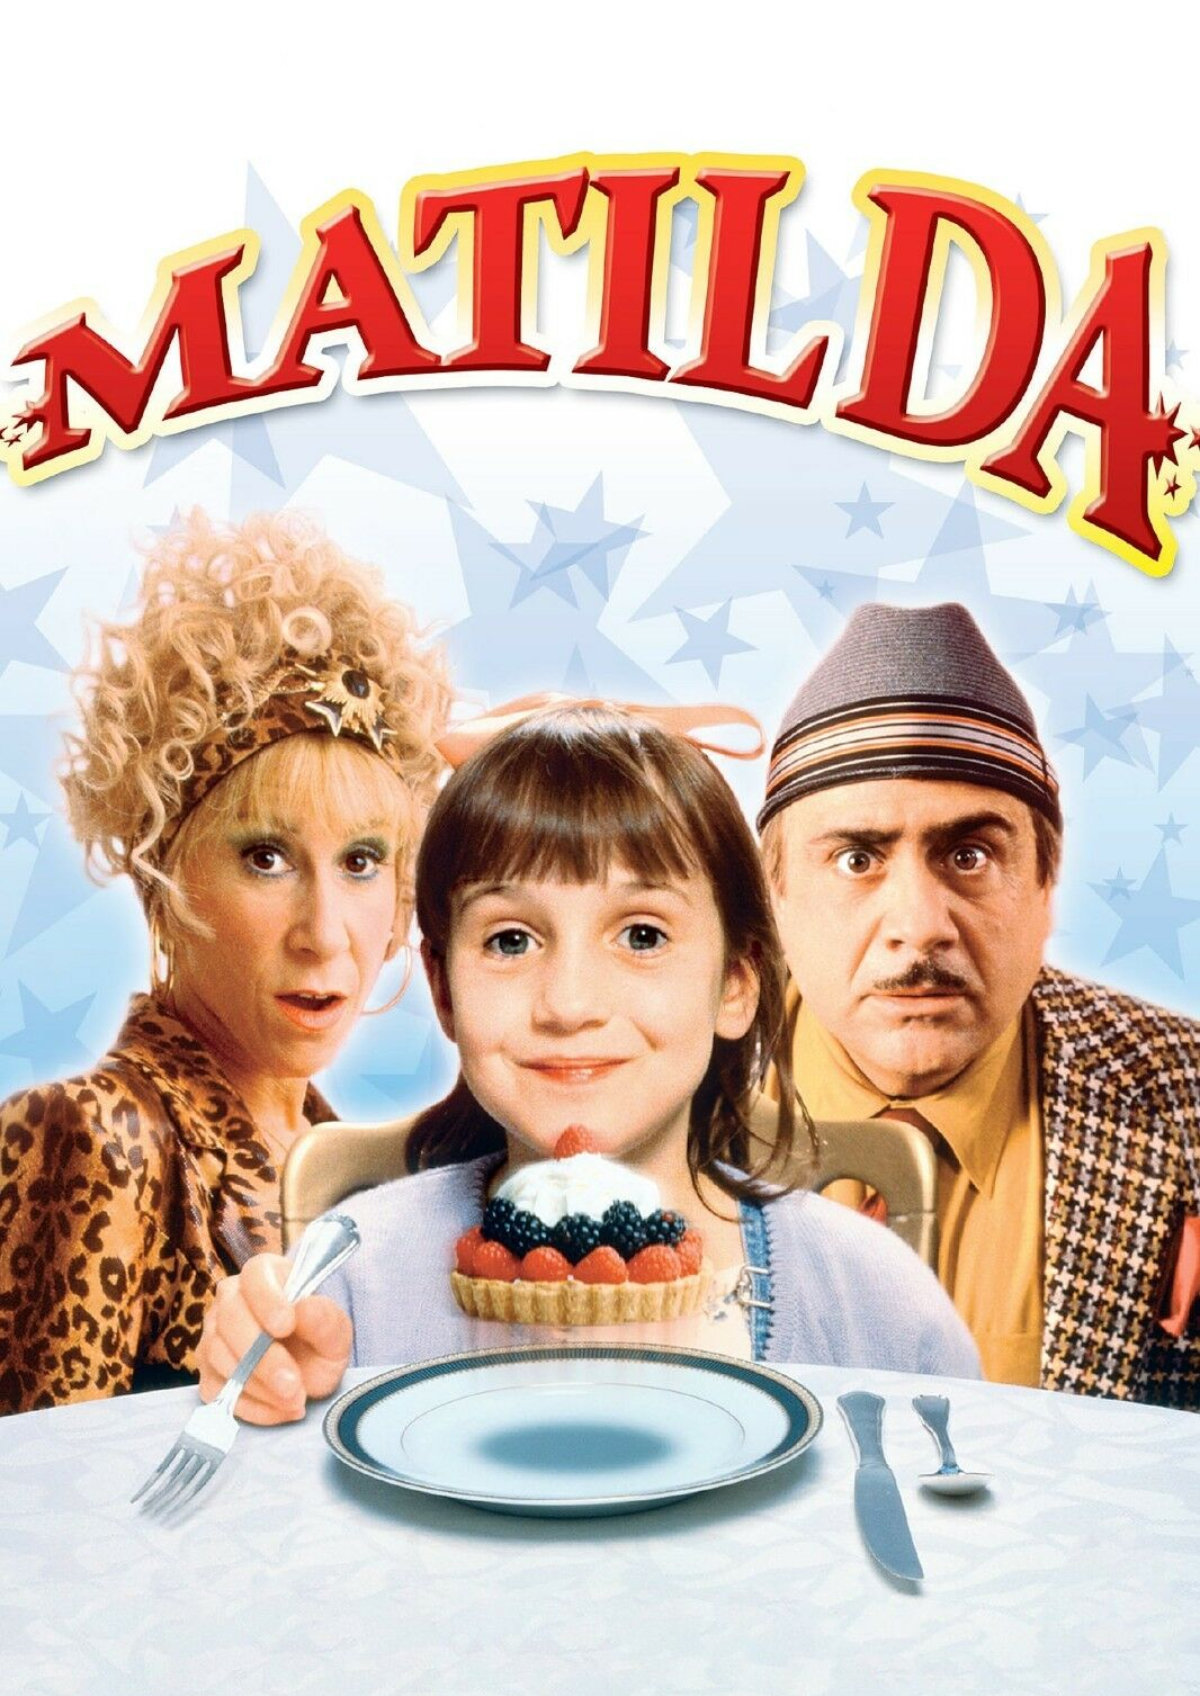 'Matilda' movie poster